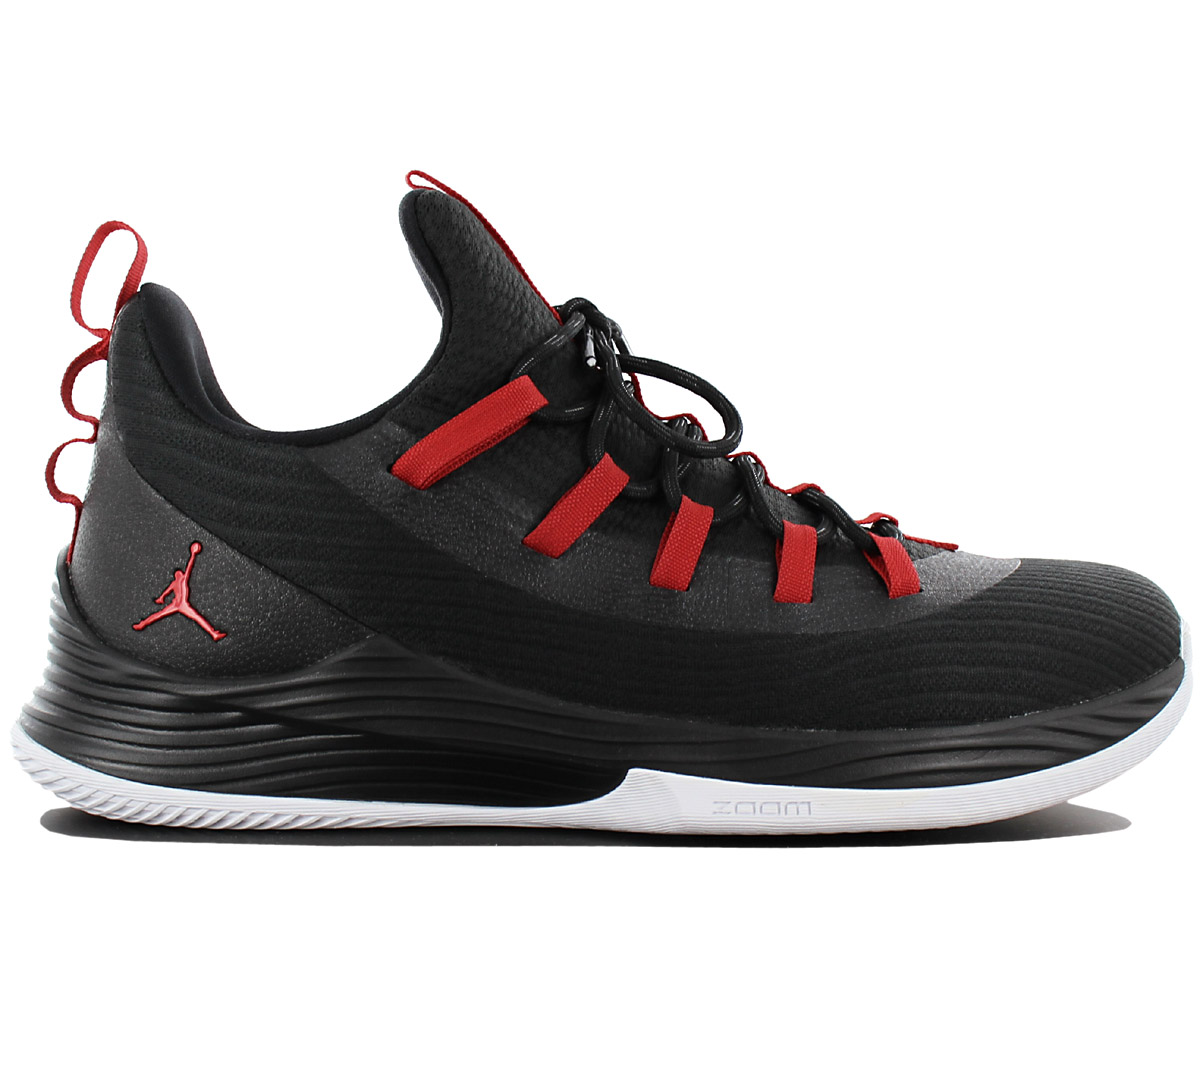 16739528bead7e NEW Nike Jordan Ultra Fly 2 Low AH8110-001 Men  s Shoes Trainers ...